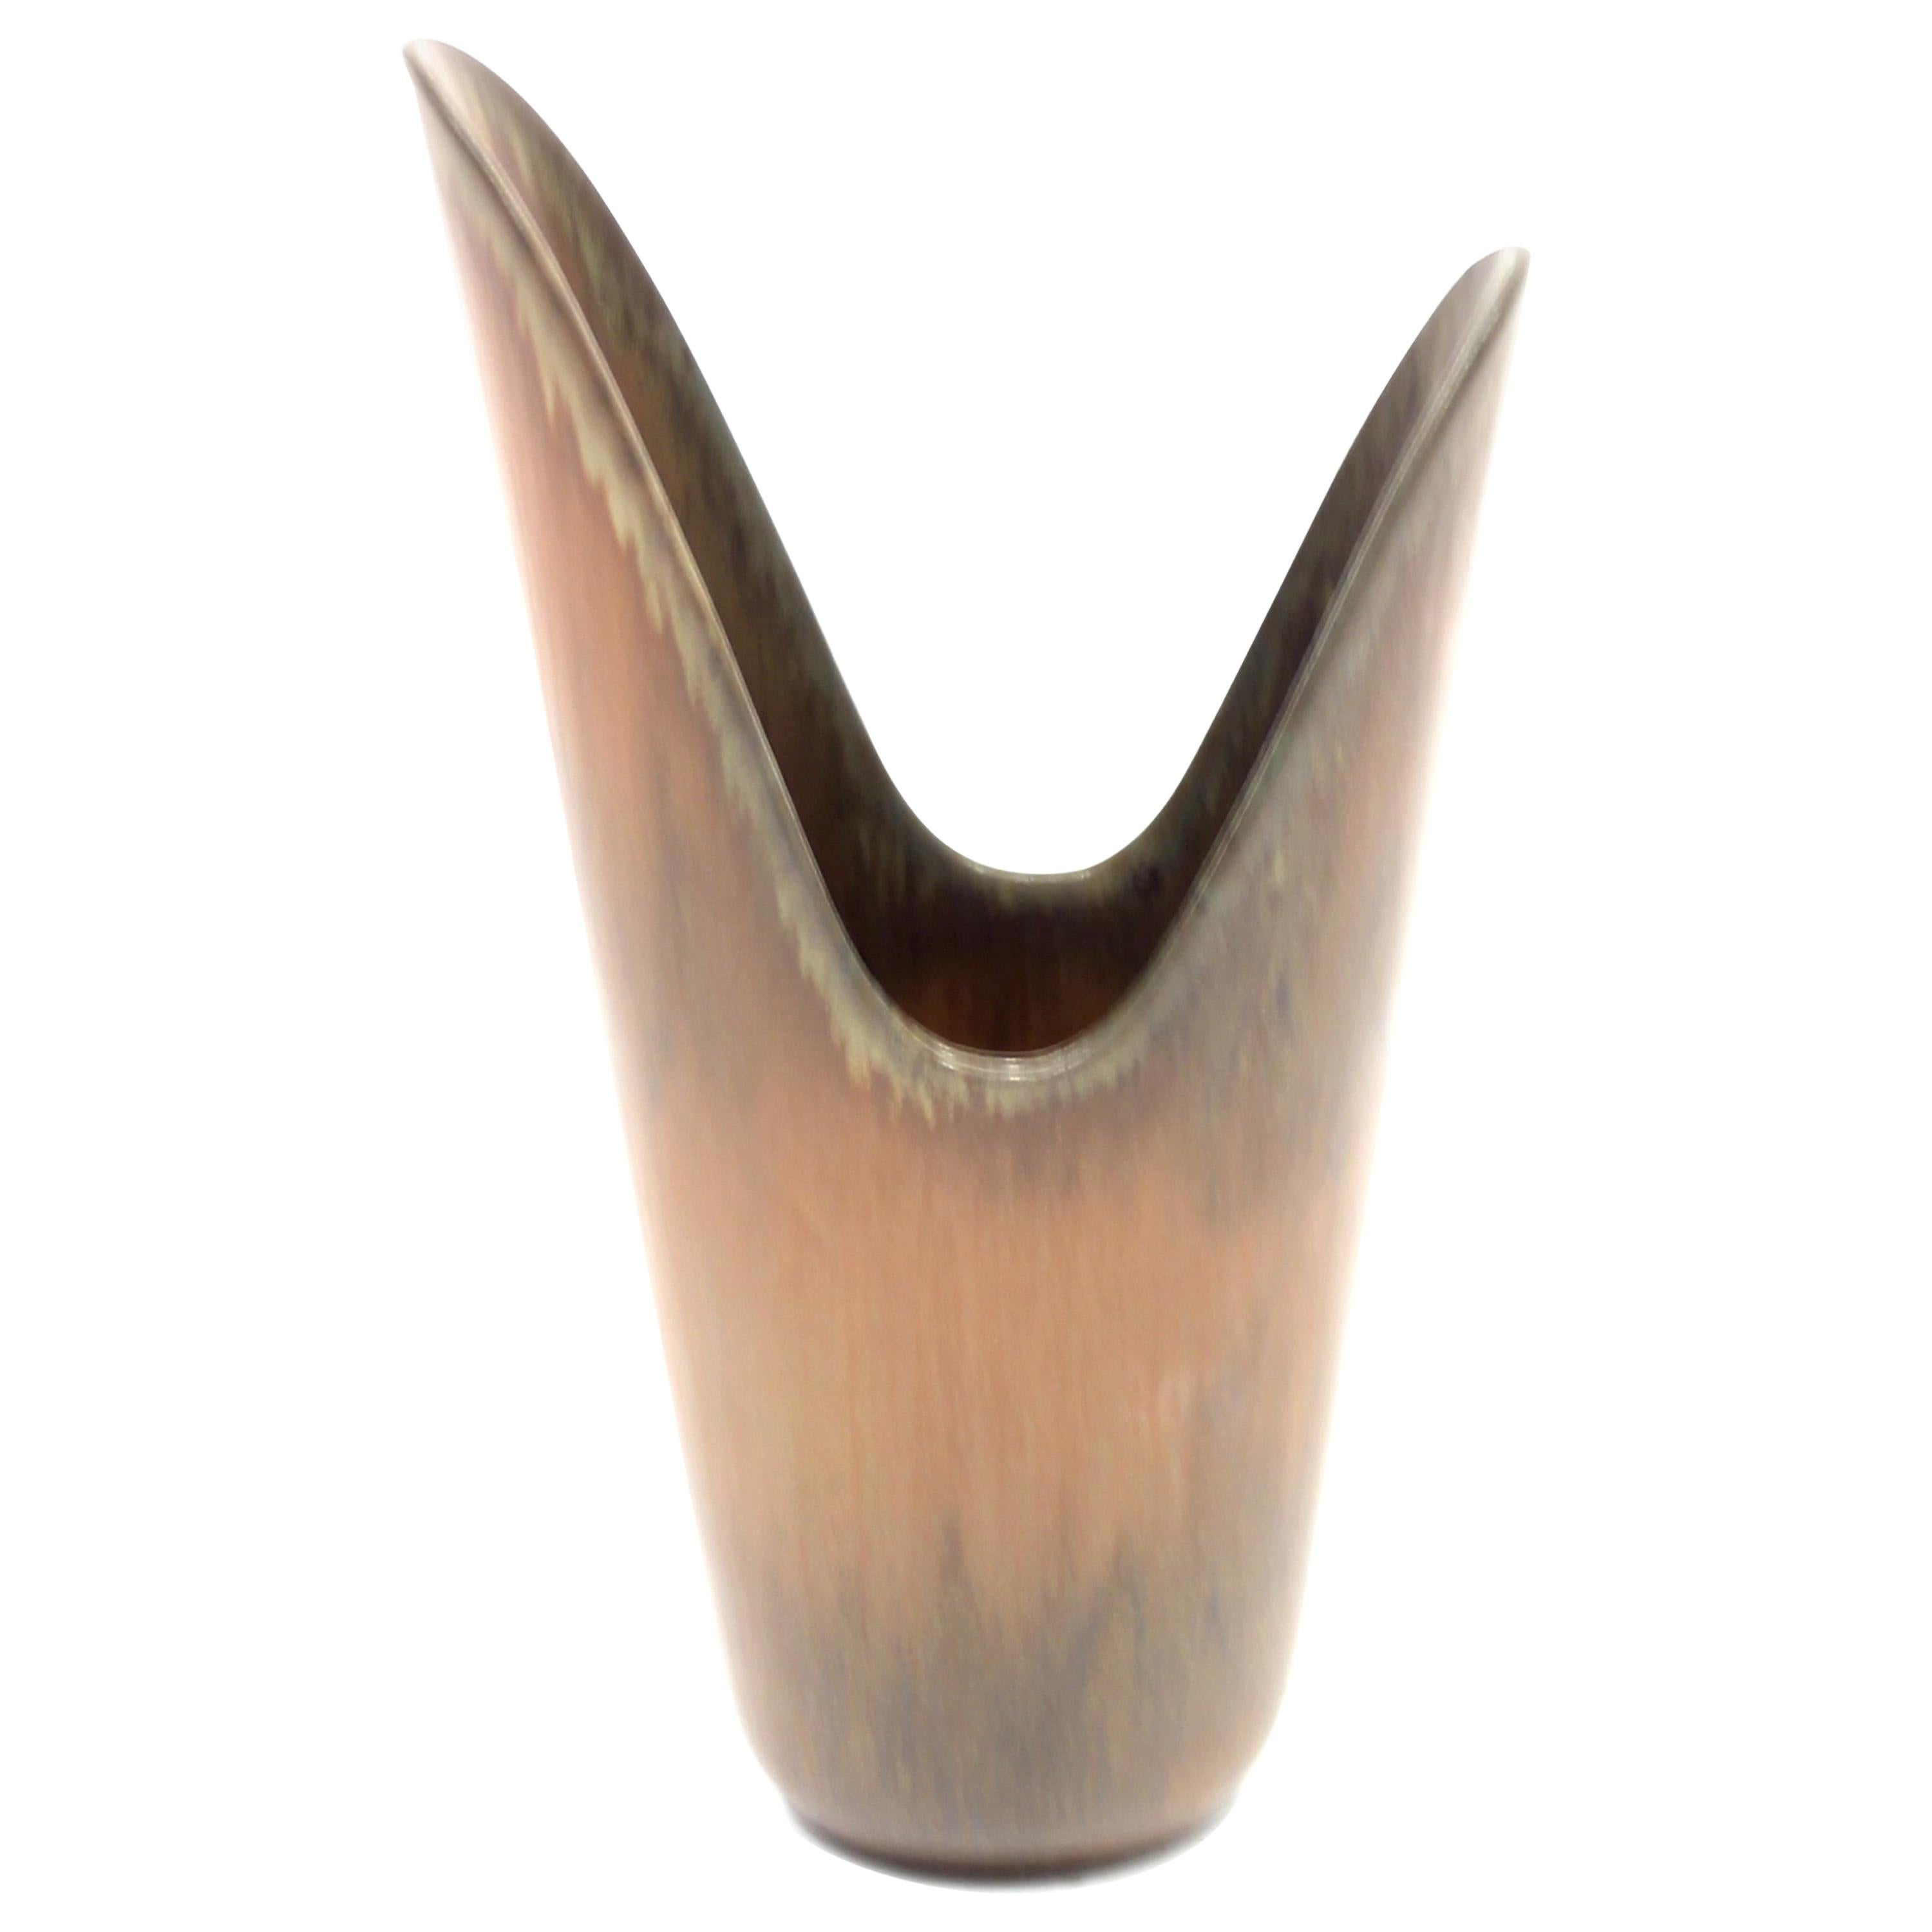 Pike's Mouth Vase by Gunnar Nylund for Rörstrand, 1950s